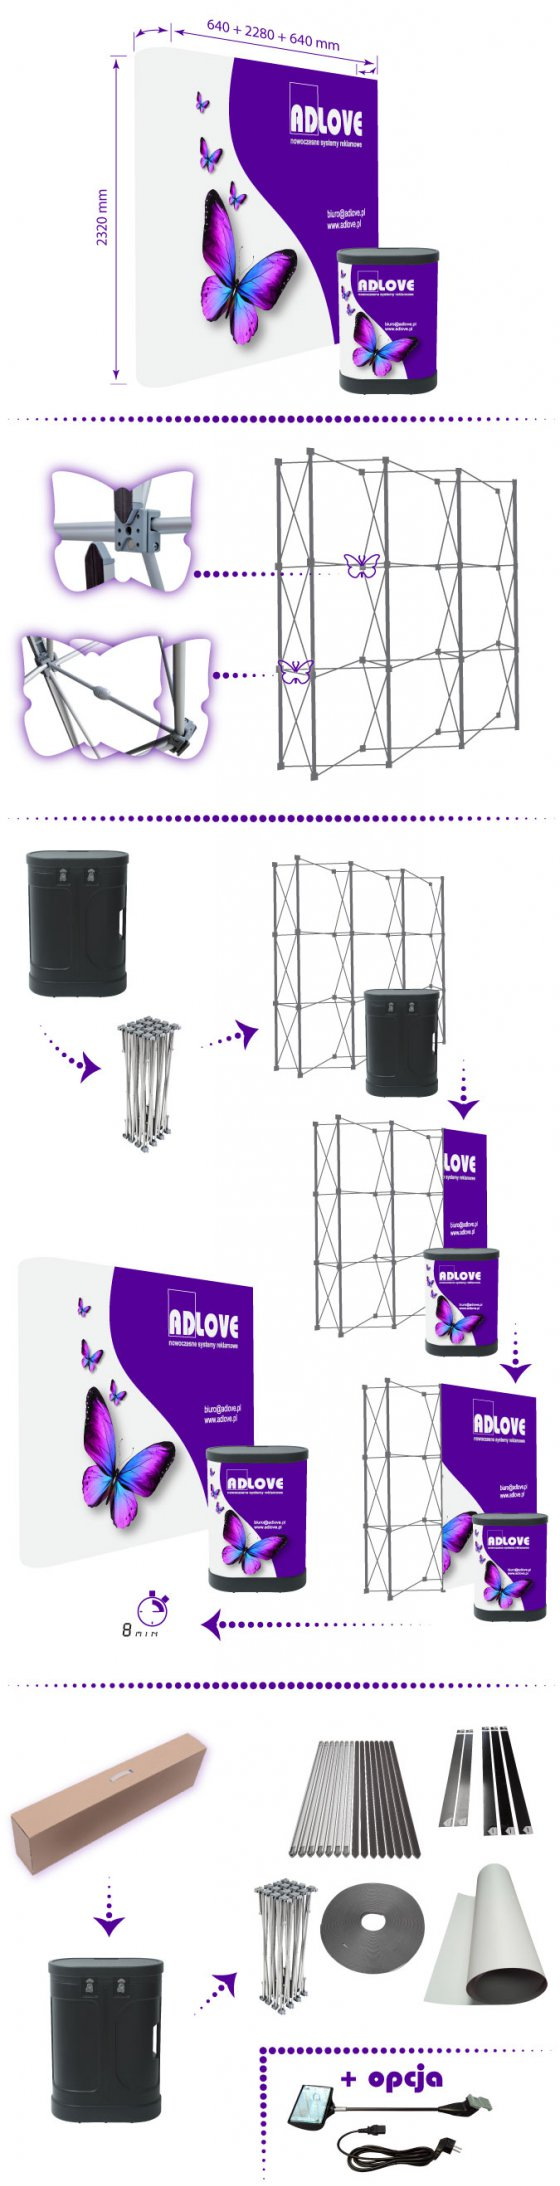 Ścianka Pop-Up SET 3x3 Prosta